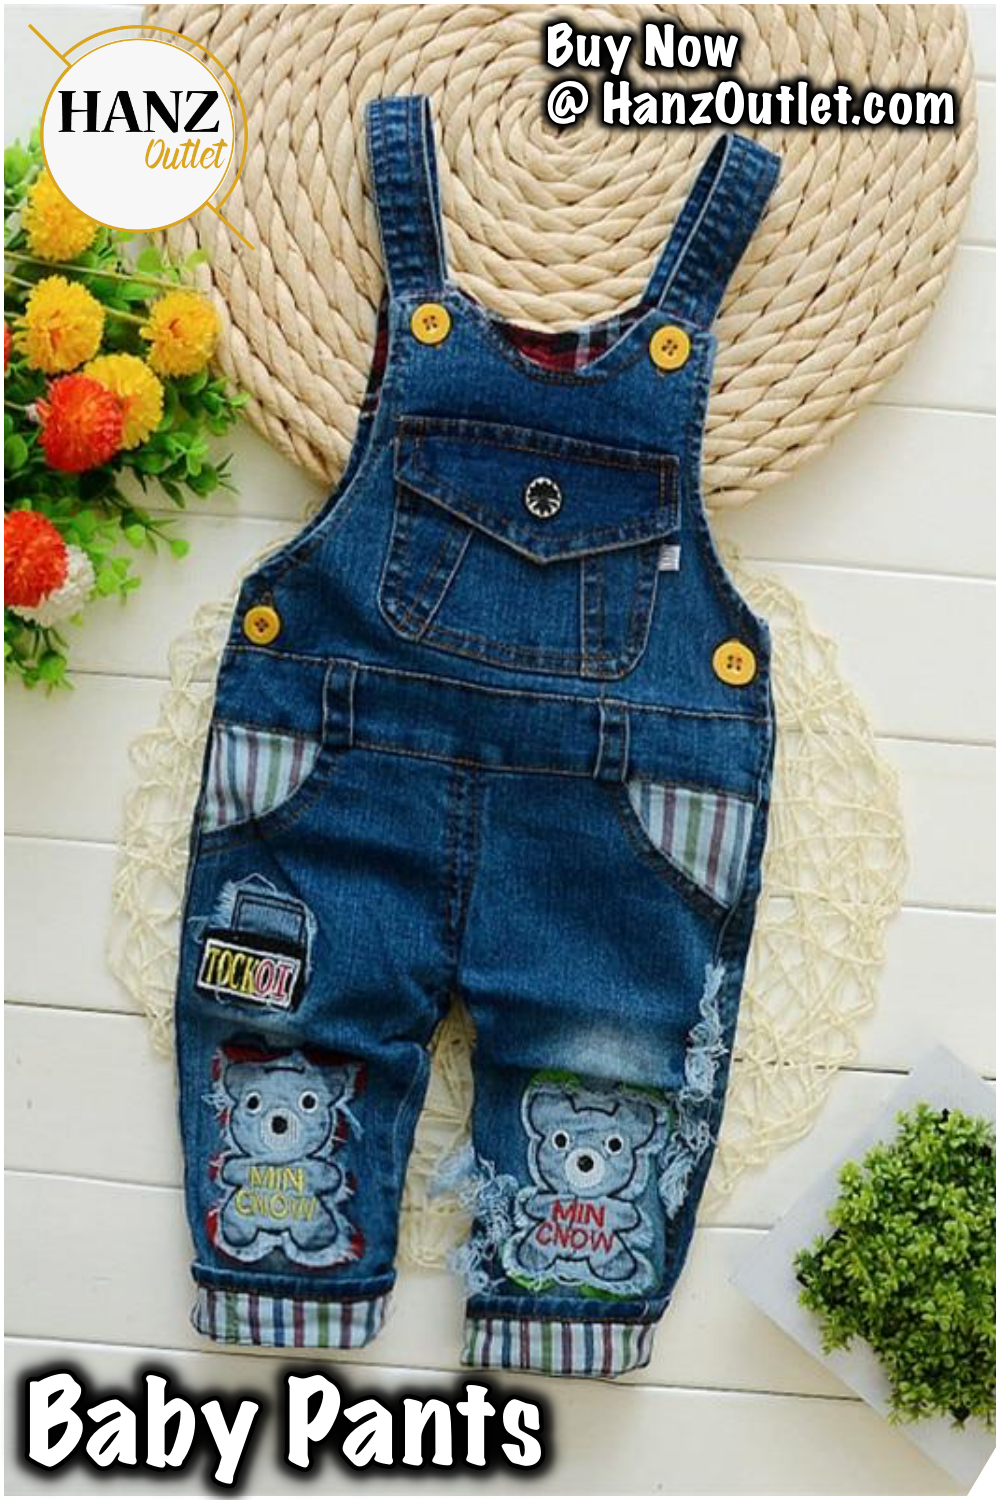 a3a7550a441 Baby Pants Spring Autumn Baby Boys Girls Overalls Pants Kids Boys Denim Bib  Pants Toddler Girls Jeans Jumpsuit Clothes  BabyPants  BabyBoys  BabyGirls  ...